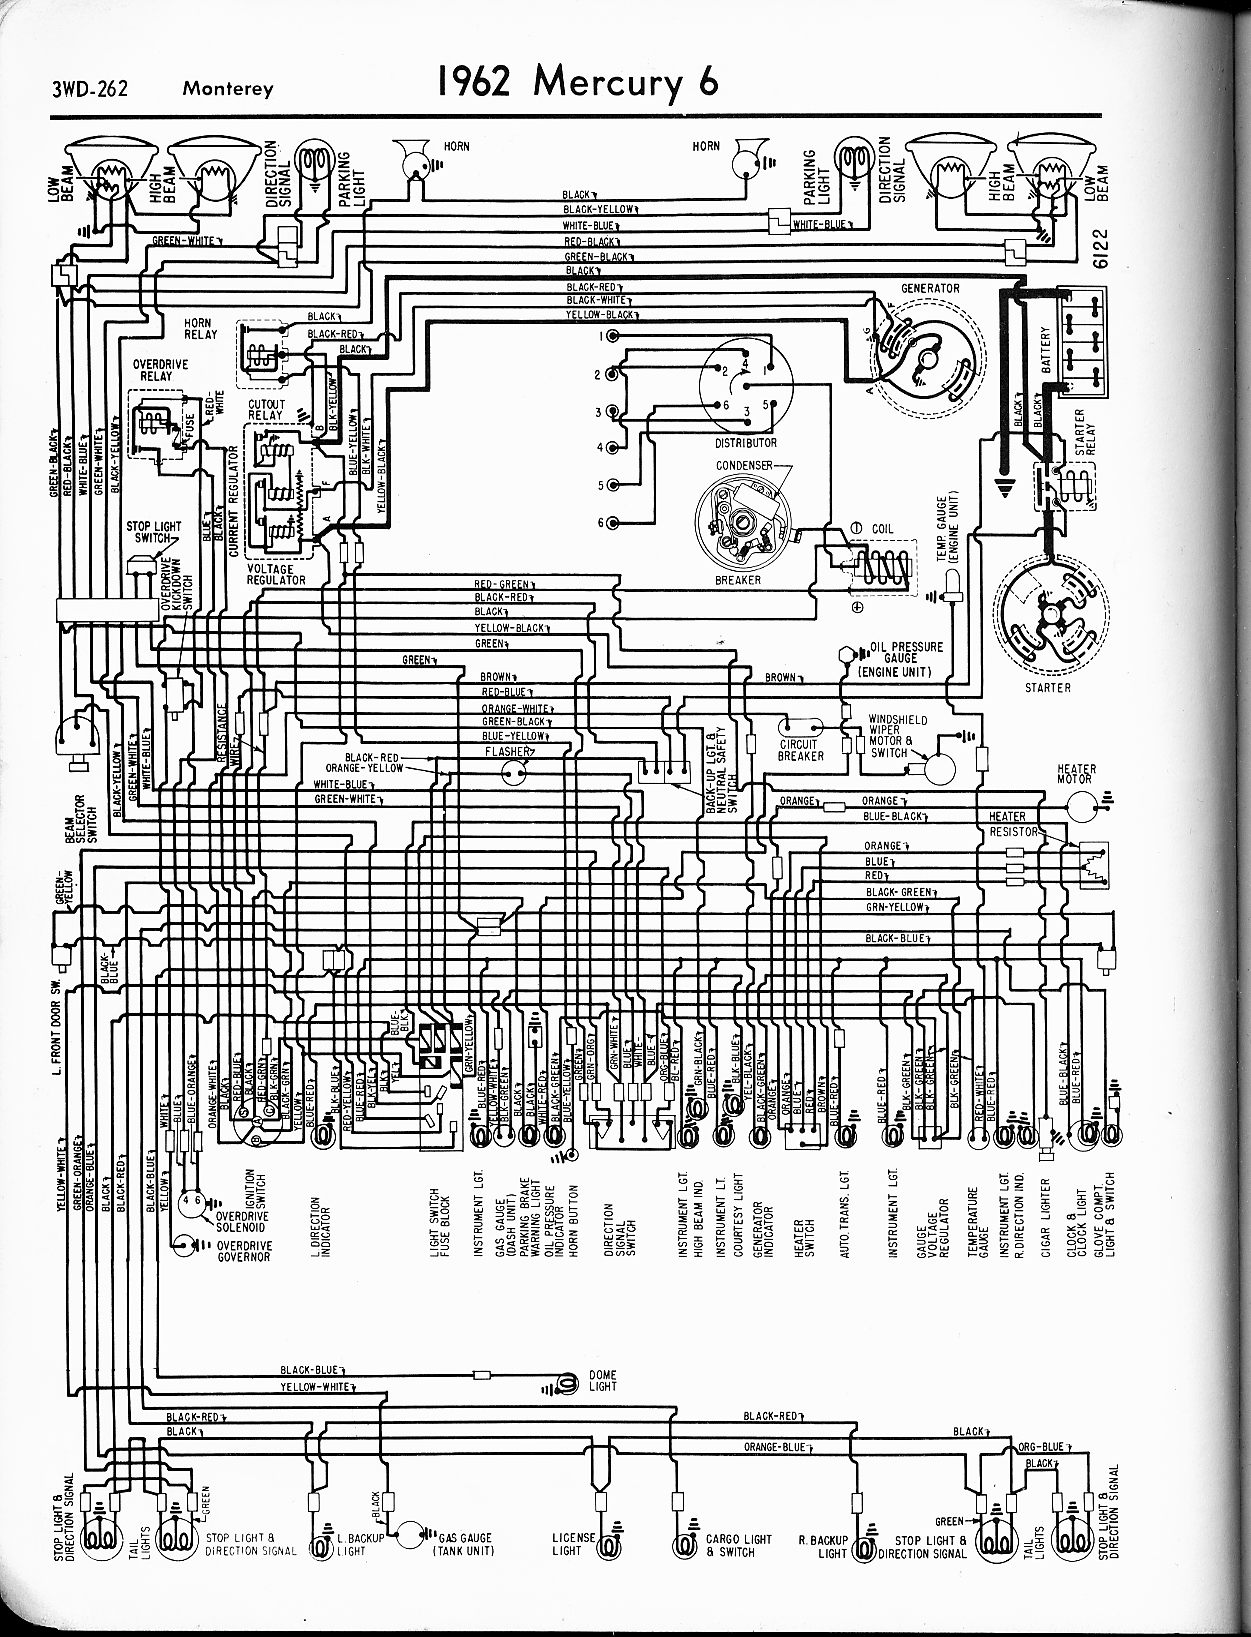 MWire5765 262 mercury wiring diagrams the old car manual project 65 comet wiring diagram at soozxer.org